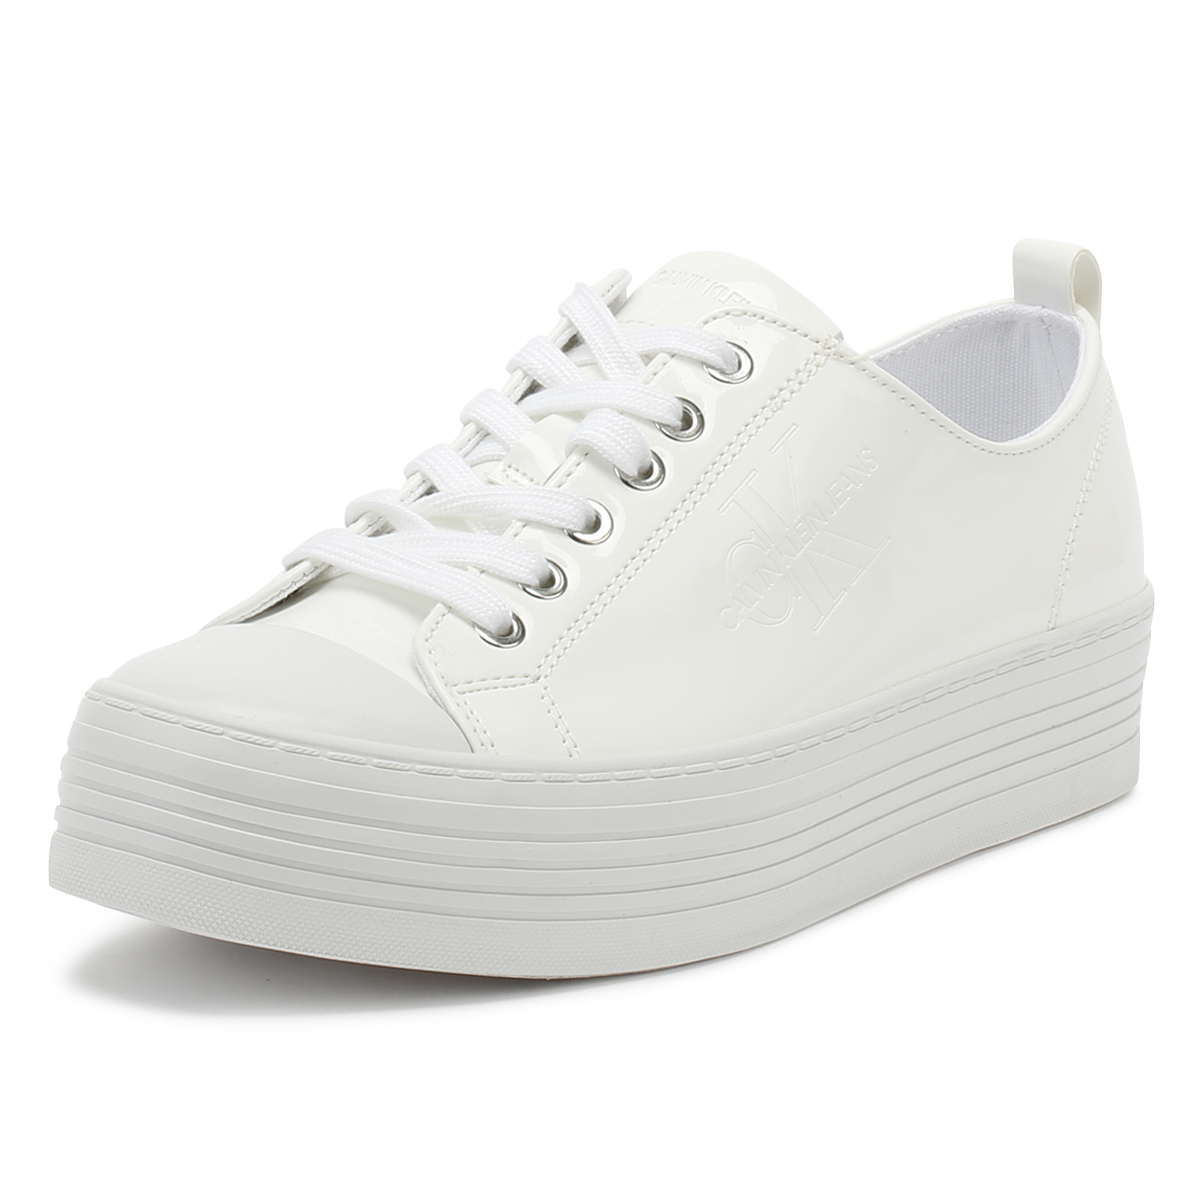 Details About Calvin Klein Jeans Womens Trainers White Zolah Patent Platform Casual Shoes Calvin Klein Zolah White Canvas Flatform Trainers Shoes